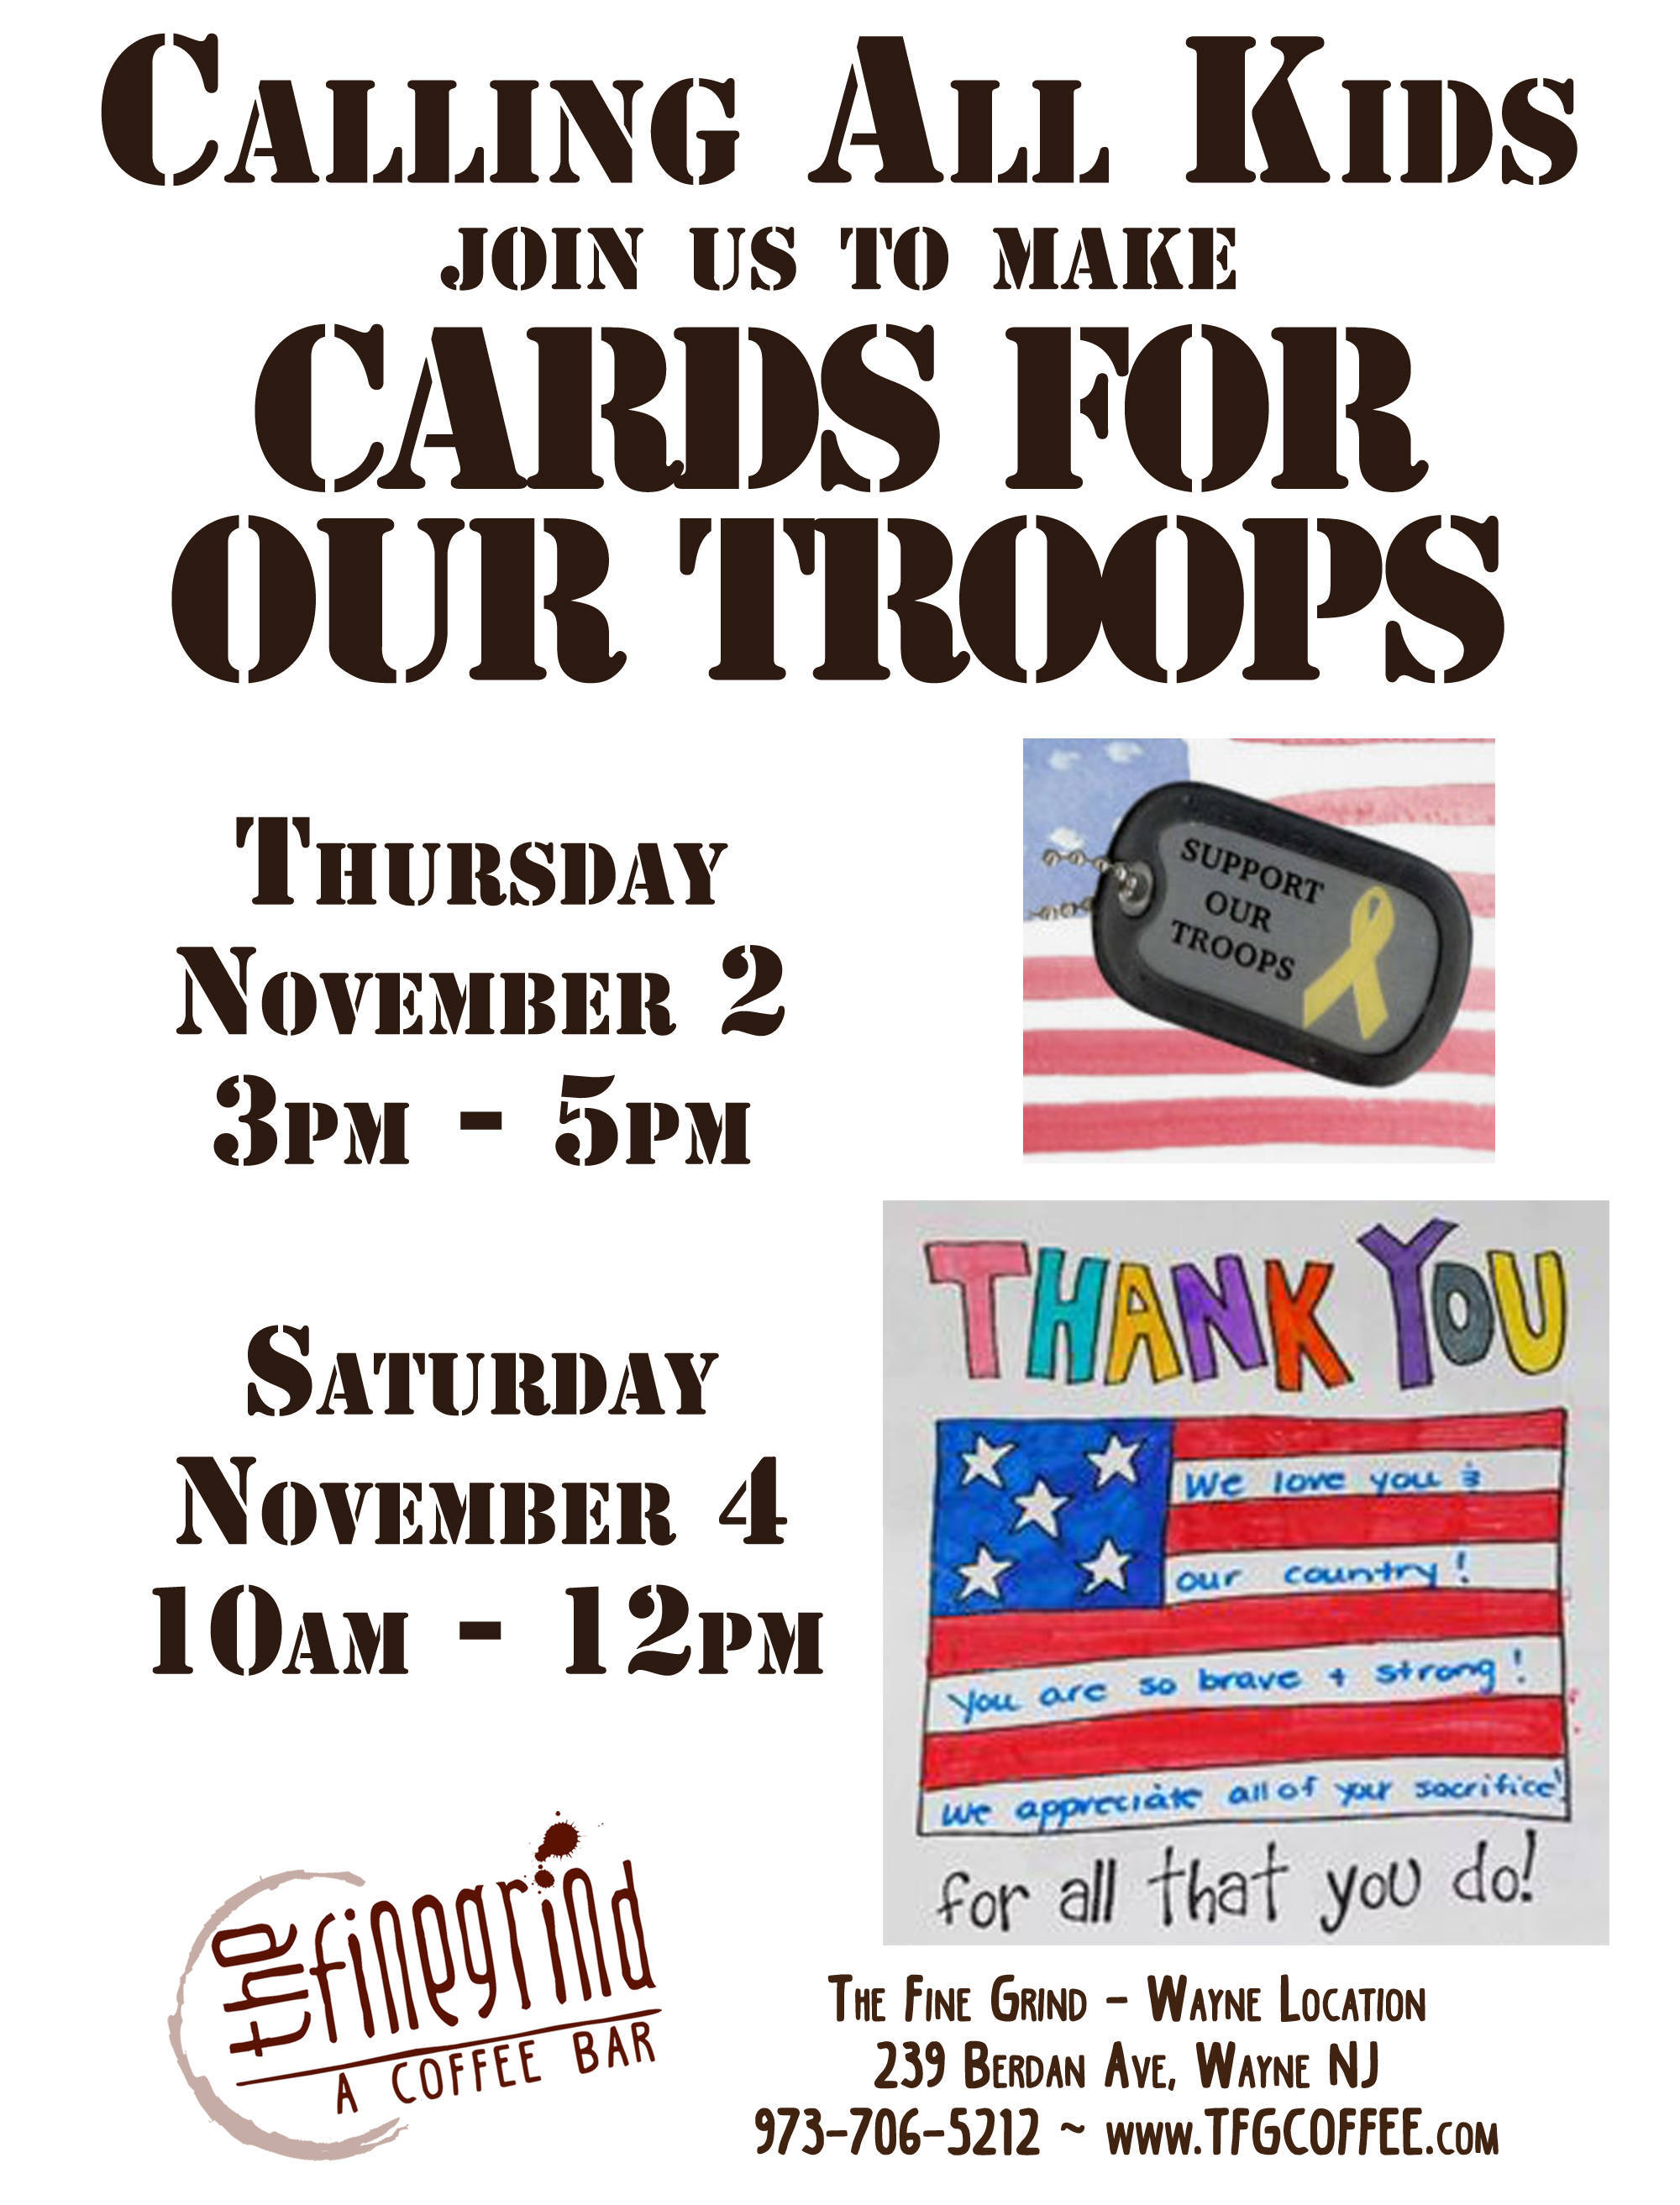 085064b958cec3540417_Cards_for_Troops.jpg